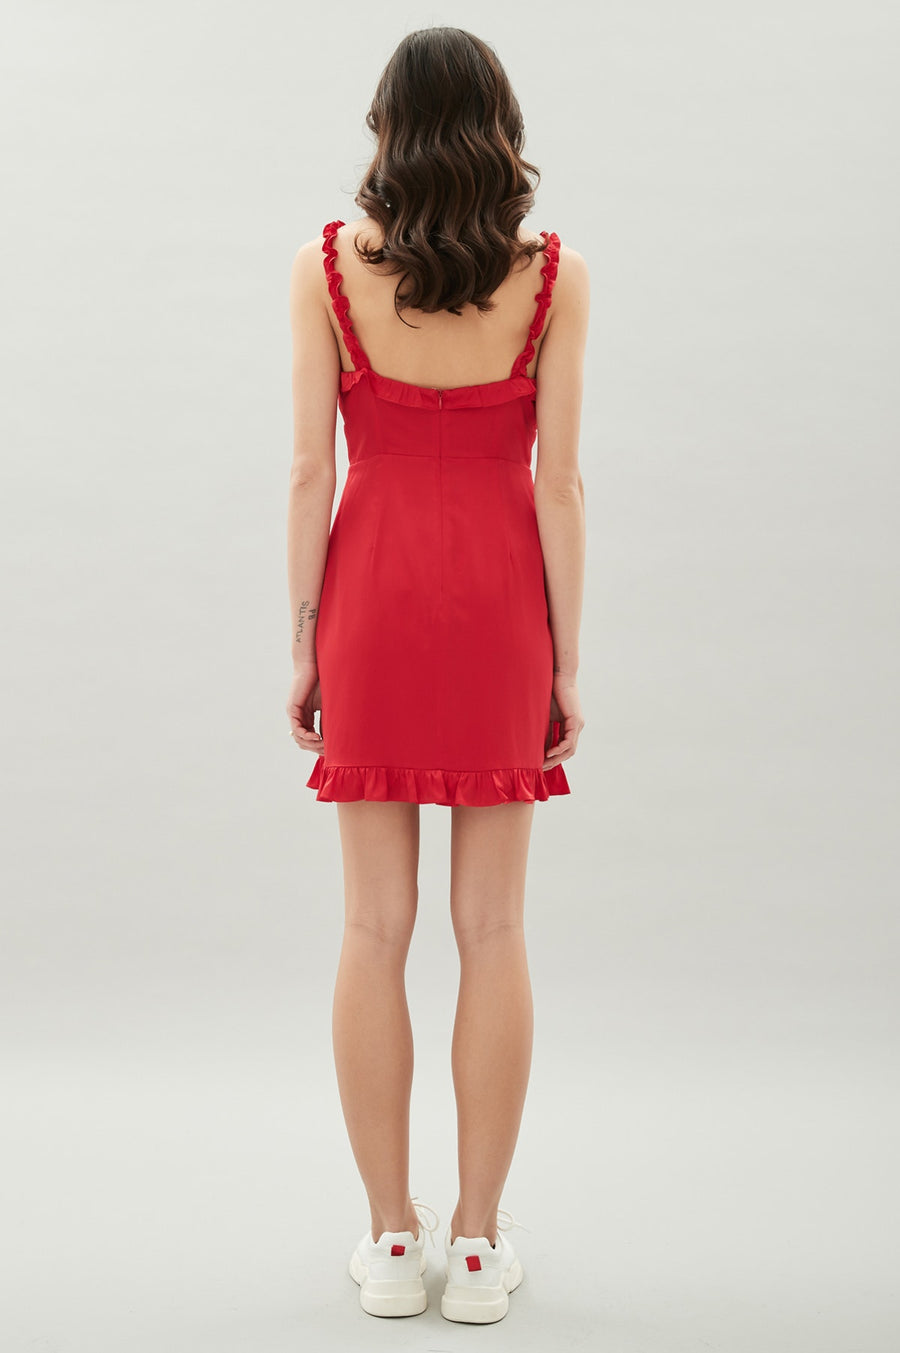 HANSEN & GRETEL - Lea Silk Dress - Samba